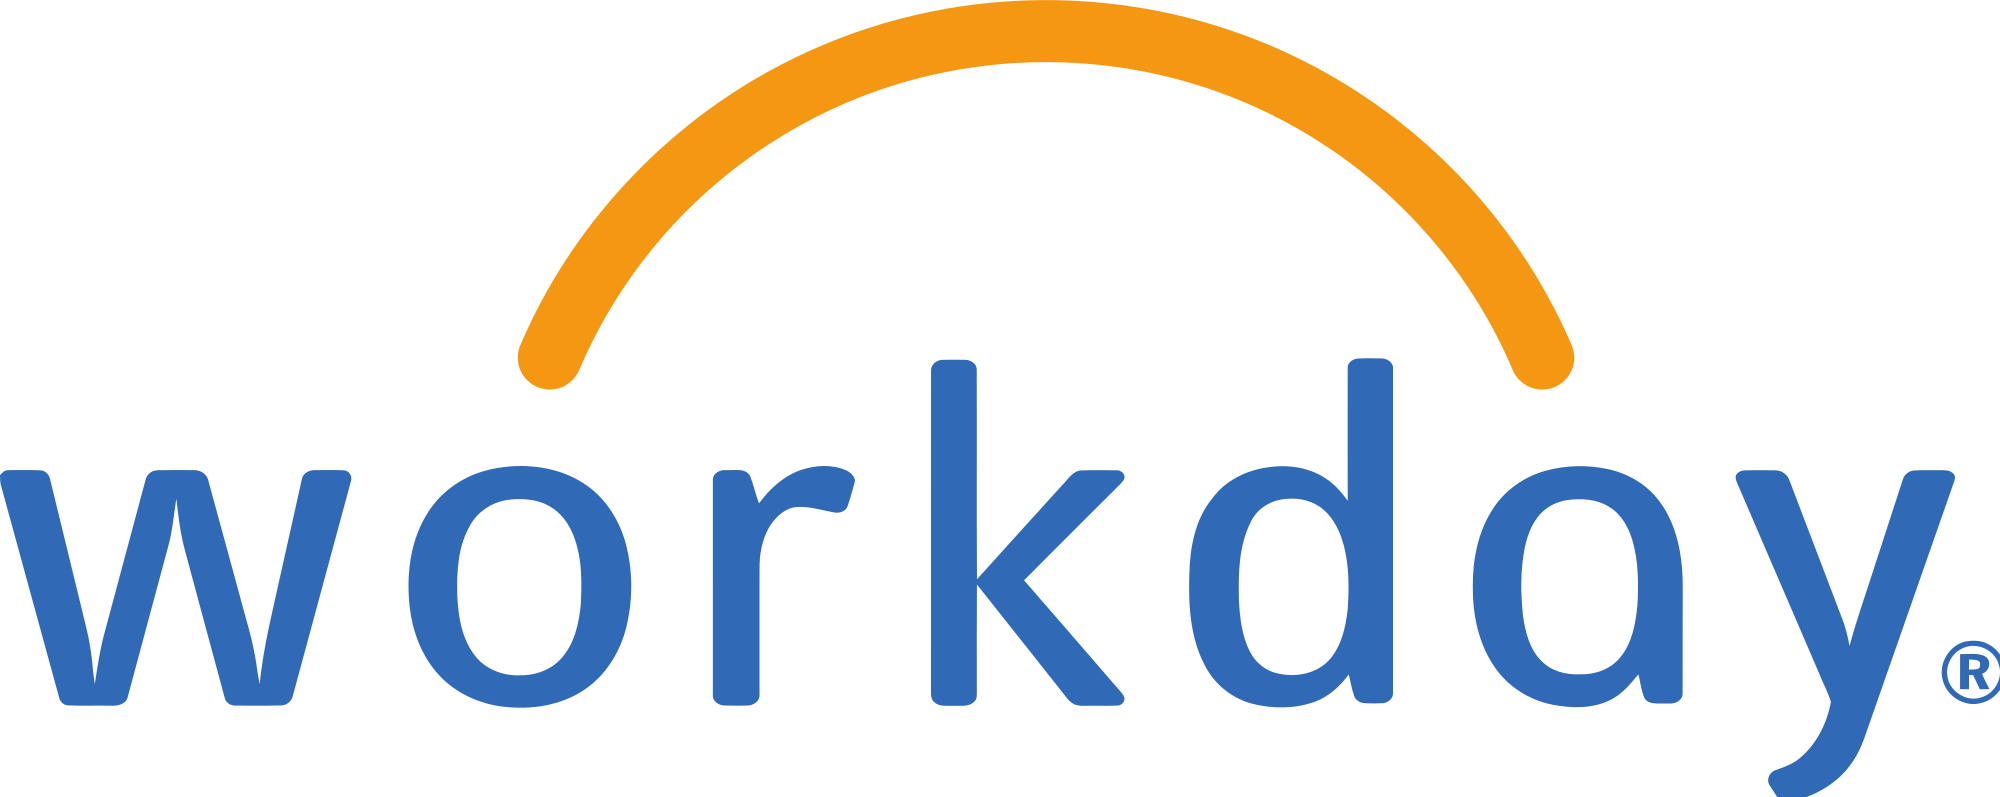 Identity Governance for Workday.